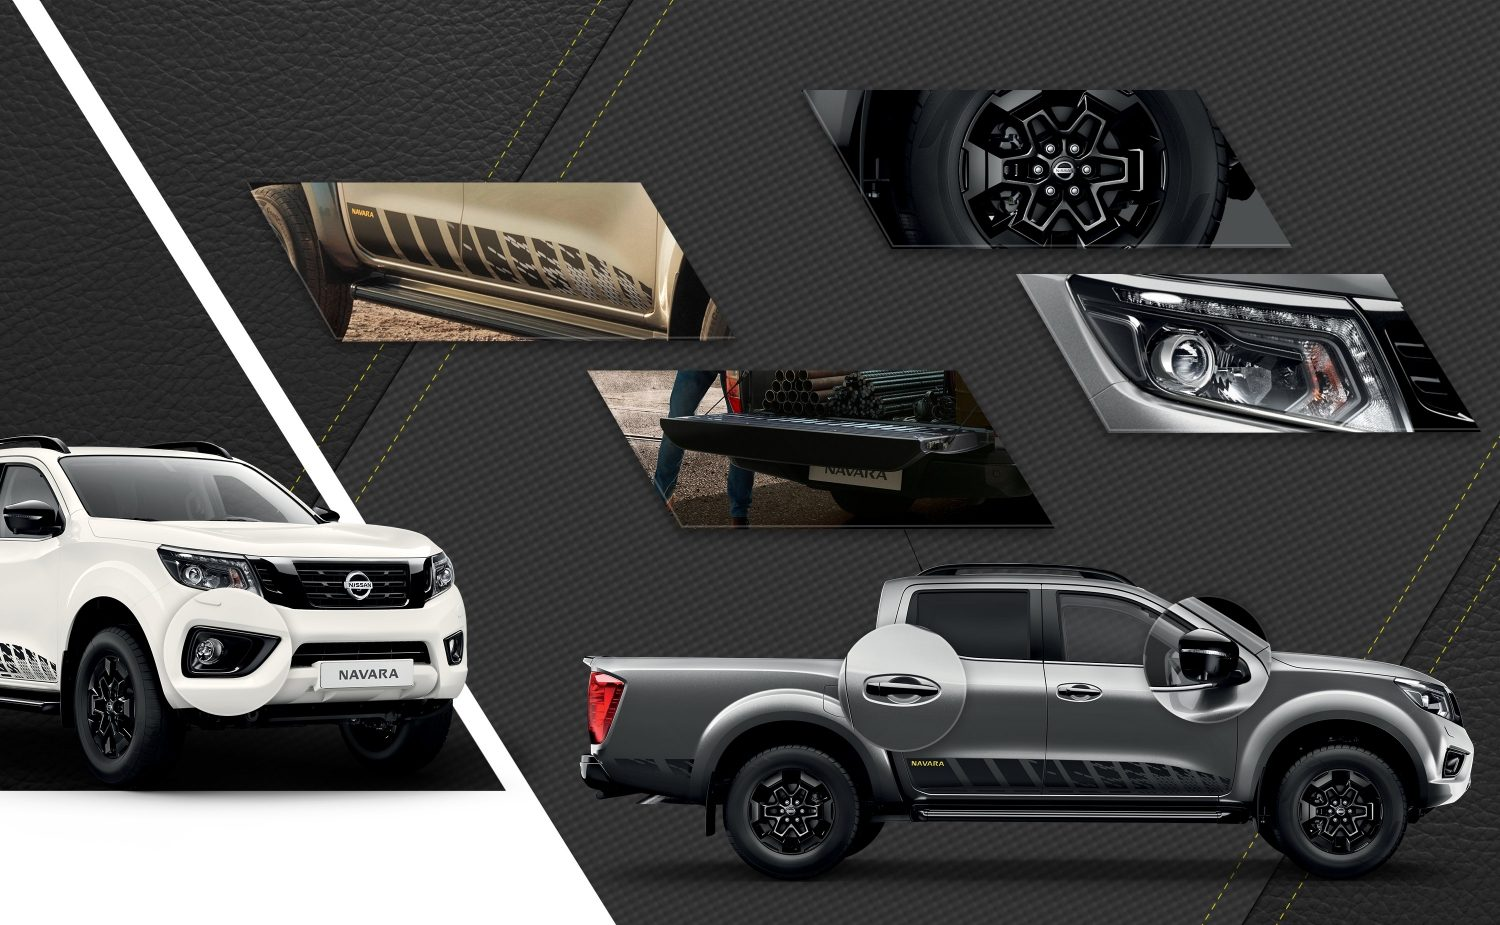 Nissan Navara comp with all the exterior styling details